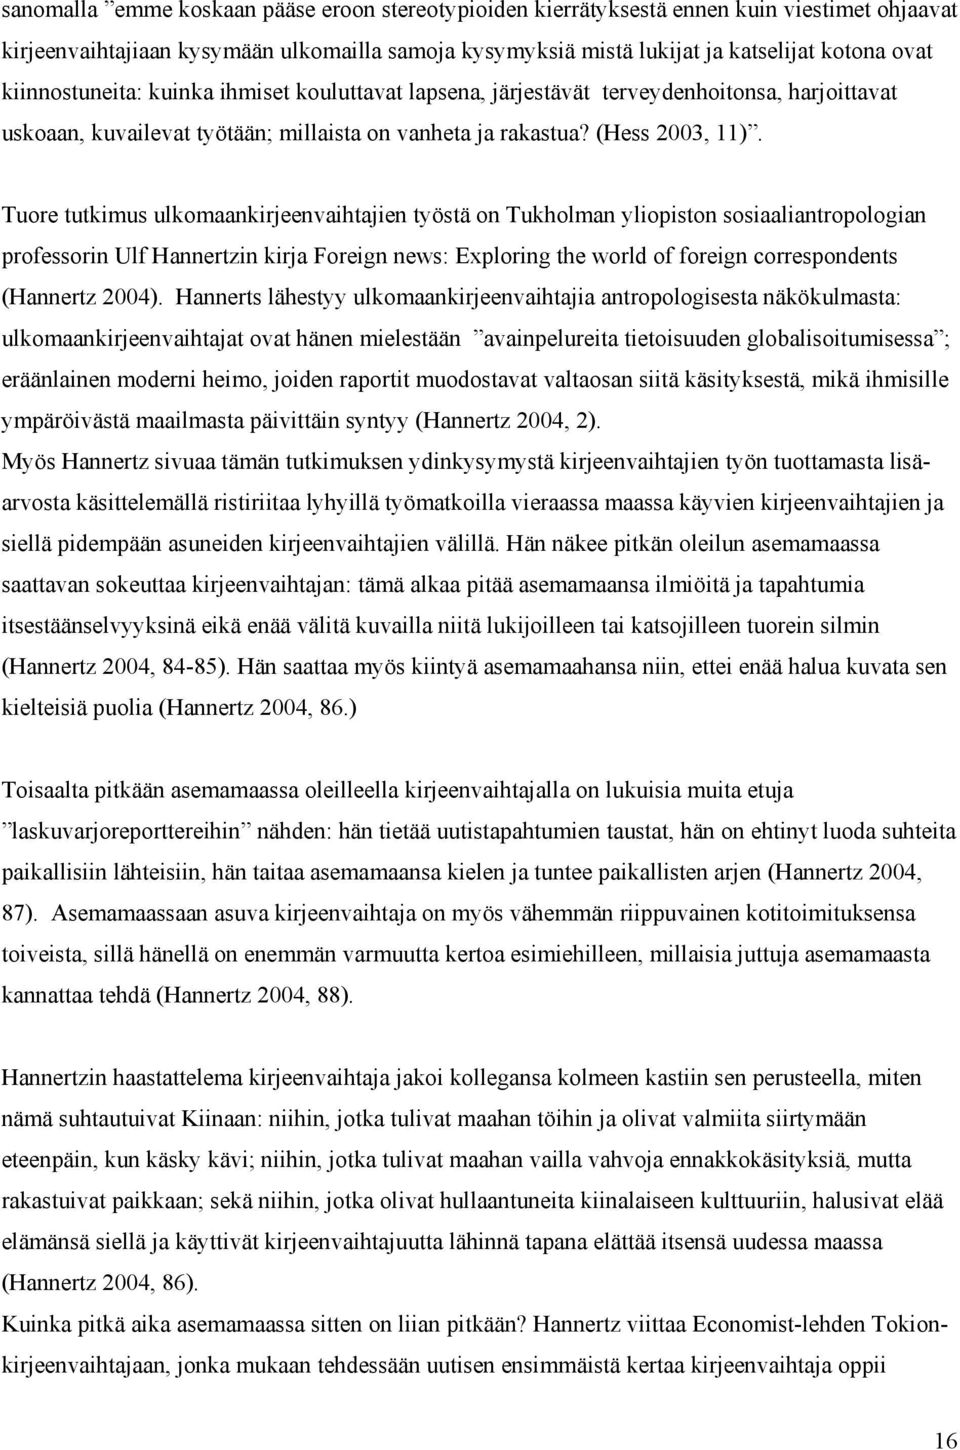 Tuore tutkimus ulkomaankirjeenvaihtajien työstä on Tukholman yliopiston sosiaaliantropologian professorin Ulf Hannertzin kirja Foreign news: Exploring the world of foreign correspondents (Hannertz